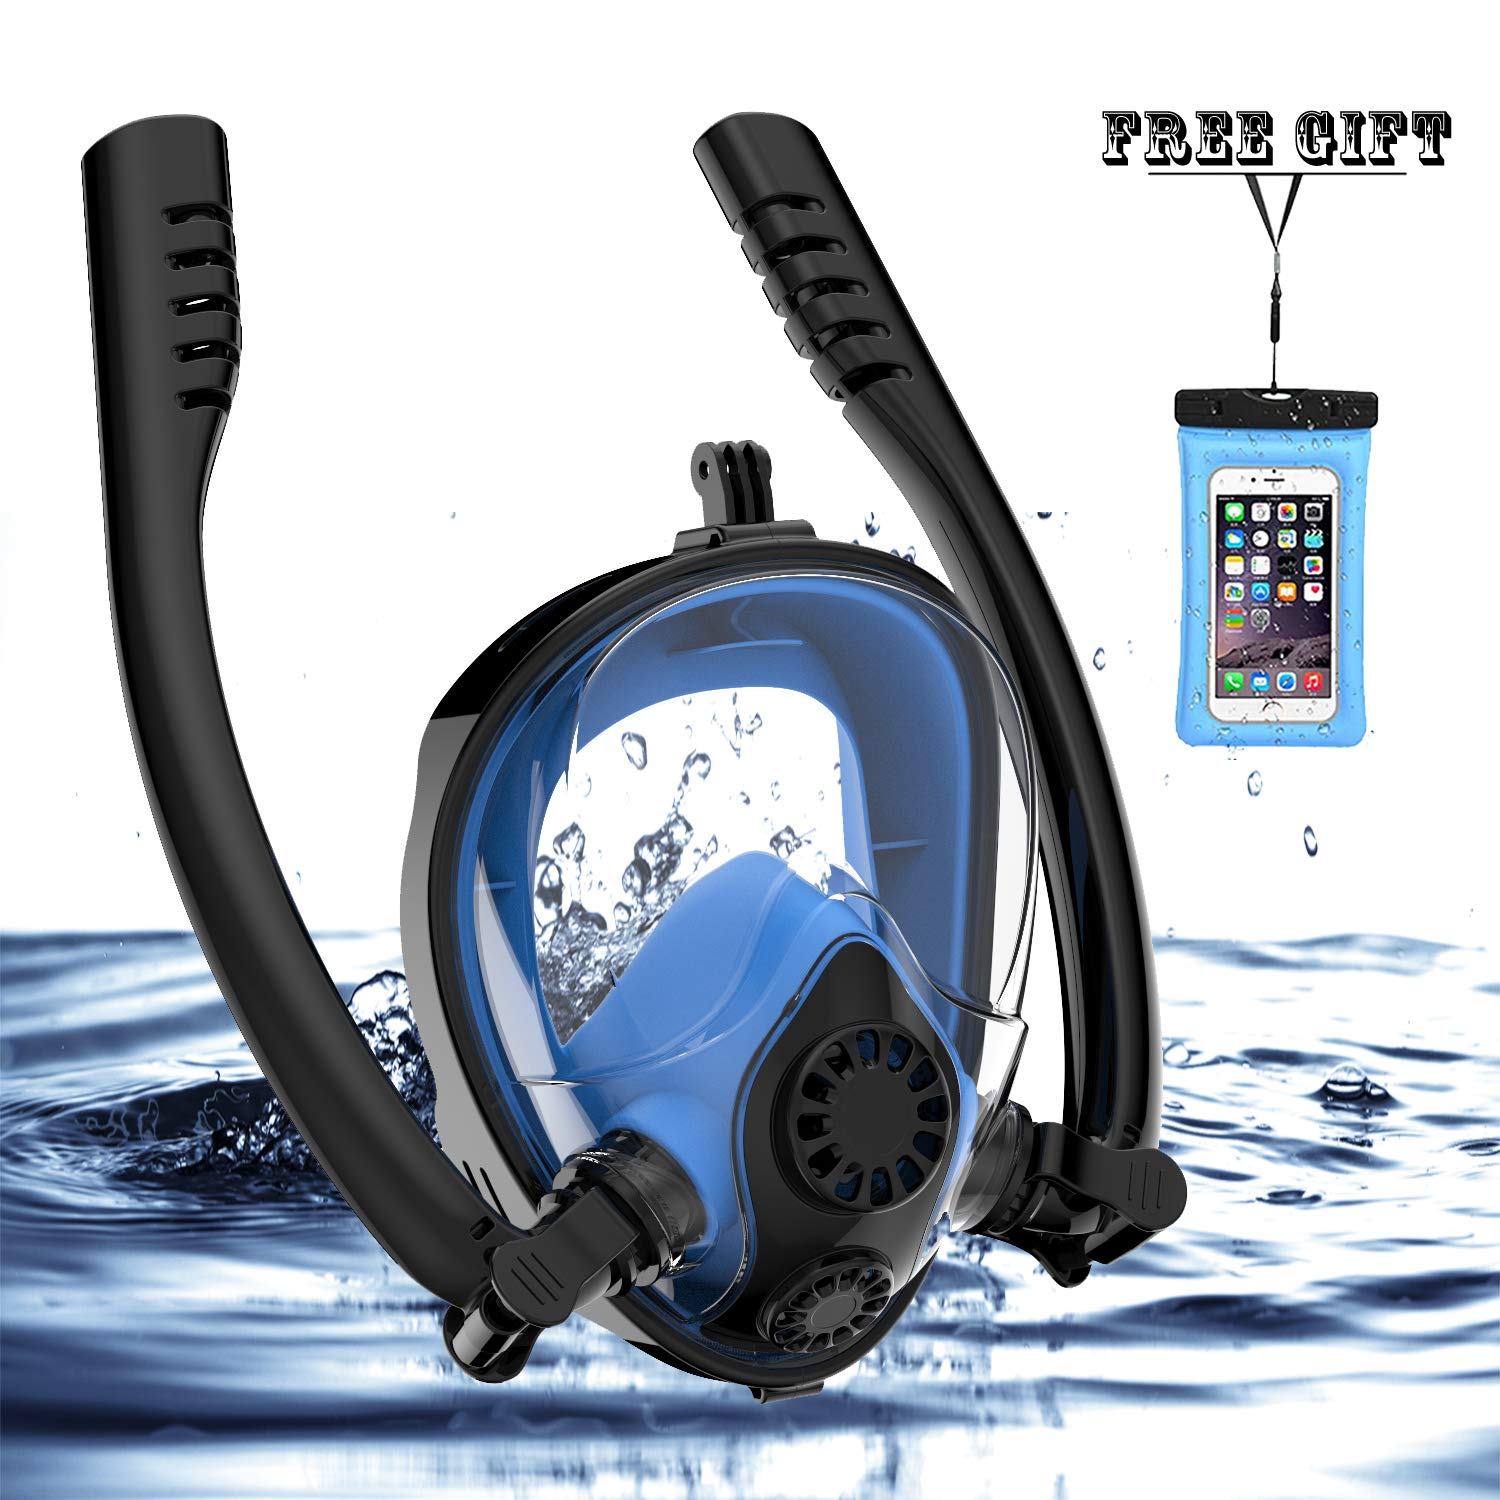 Full Face Snorkel Mask, HJKB K2 Free Breathing Snorkeling Mask with Double Tubes and 180° Panoramic Viewing, Zero Fog and Anti Leak Guarantee with Camera Mount for Adult (Black + Blue, Medium Adult) by Jahuite (Image #1)